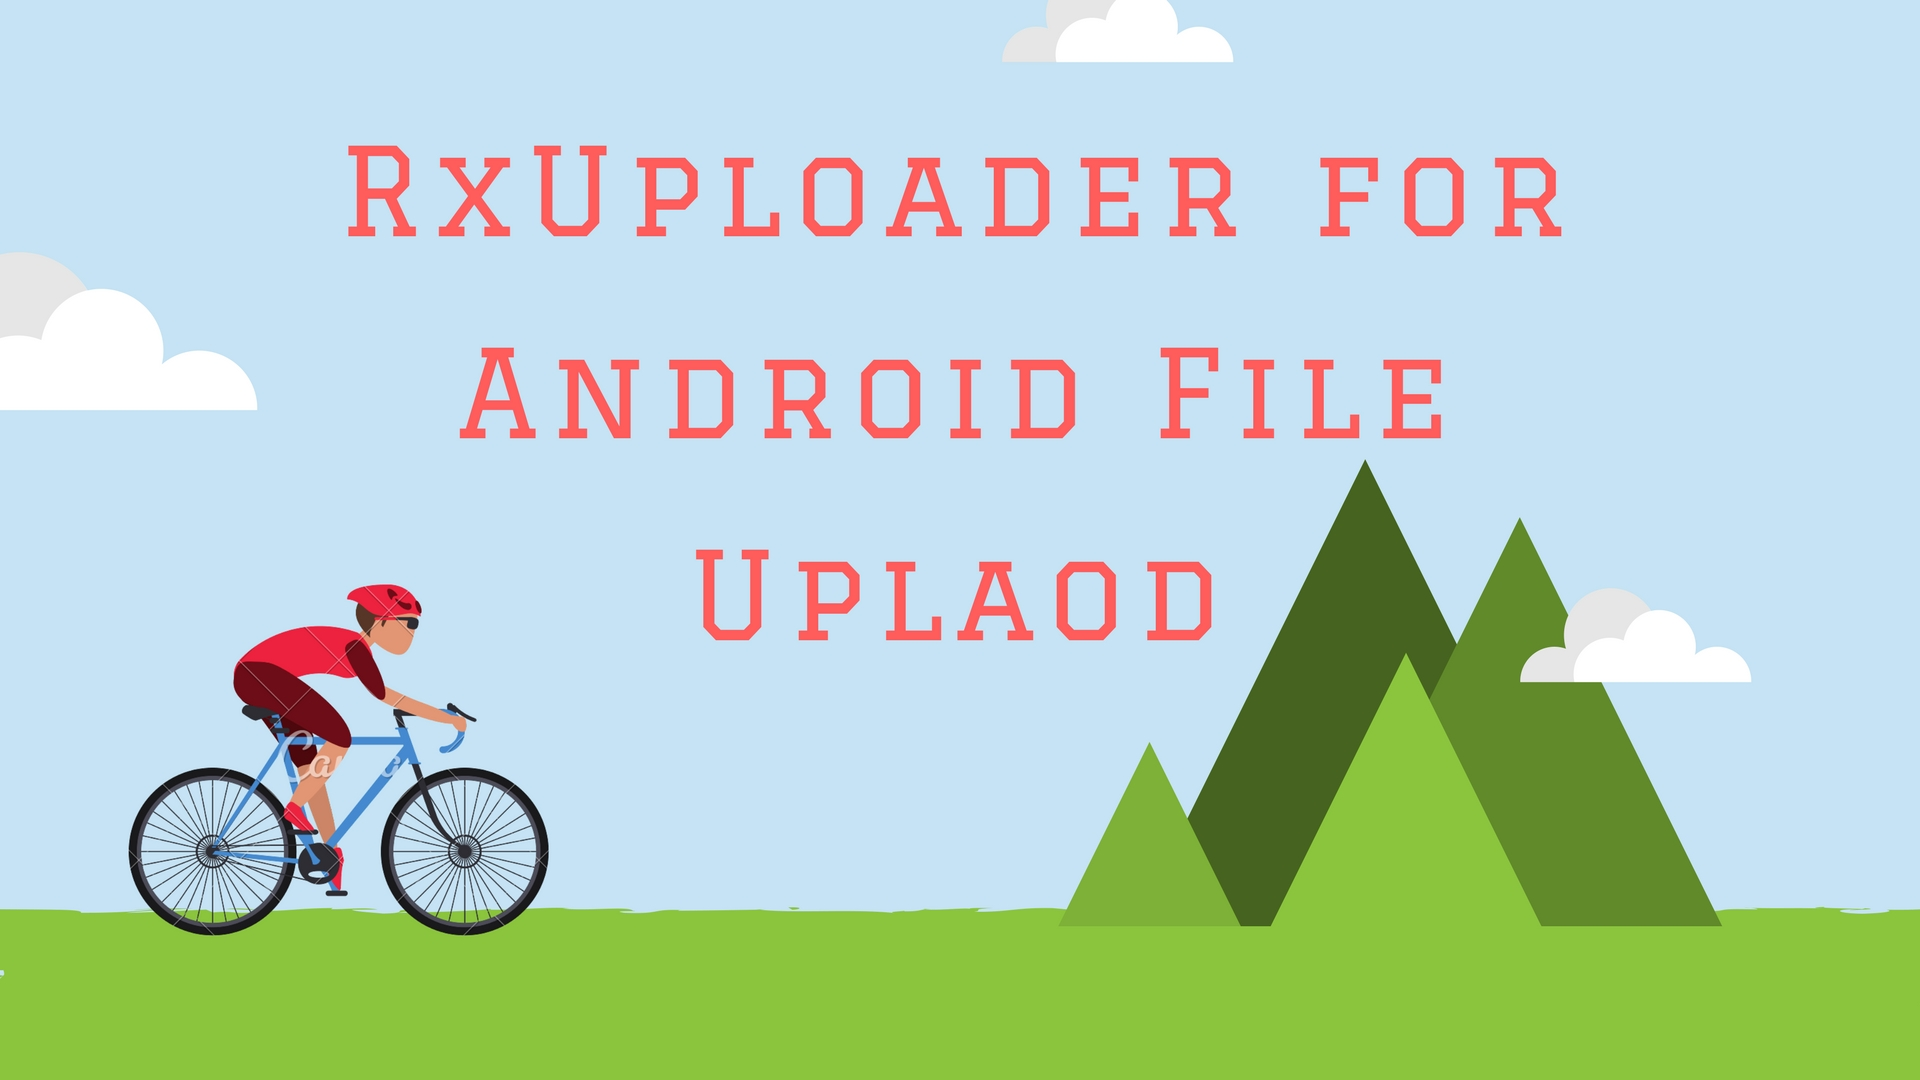 Uplaod a file by using RxUploader in Android | MoboLogic+